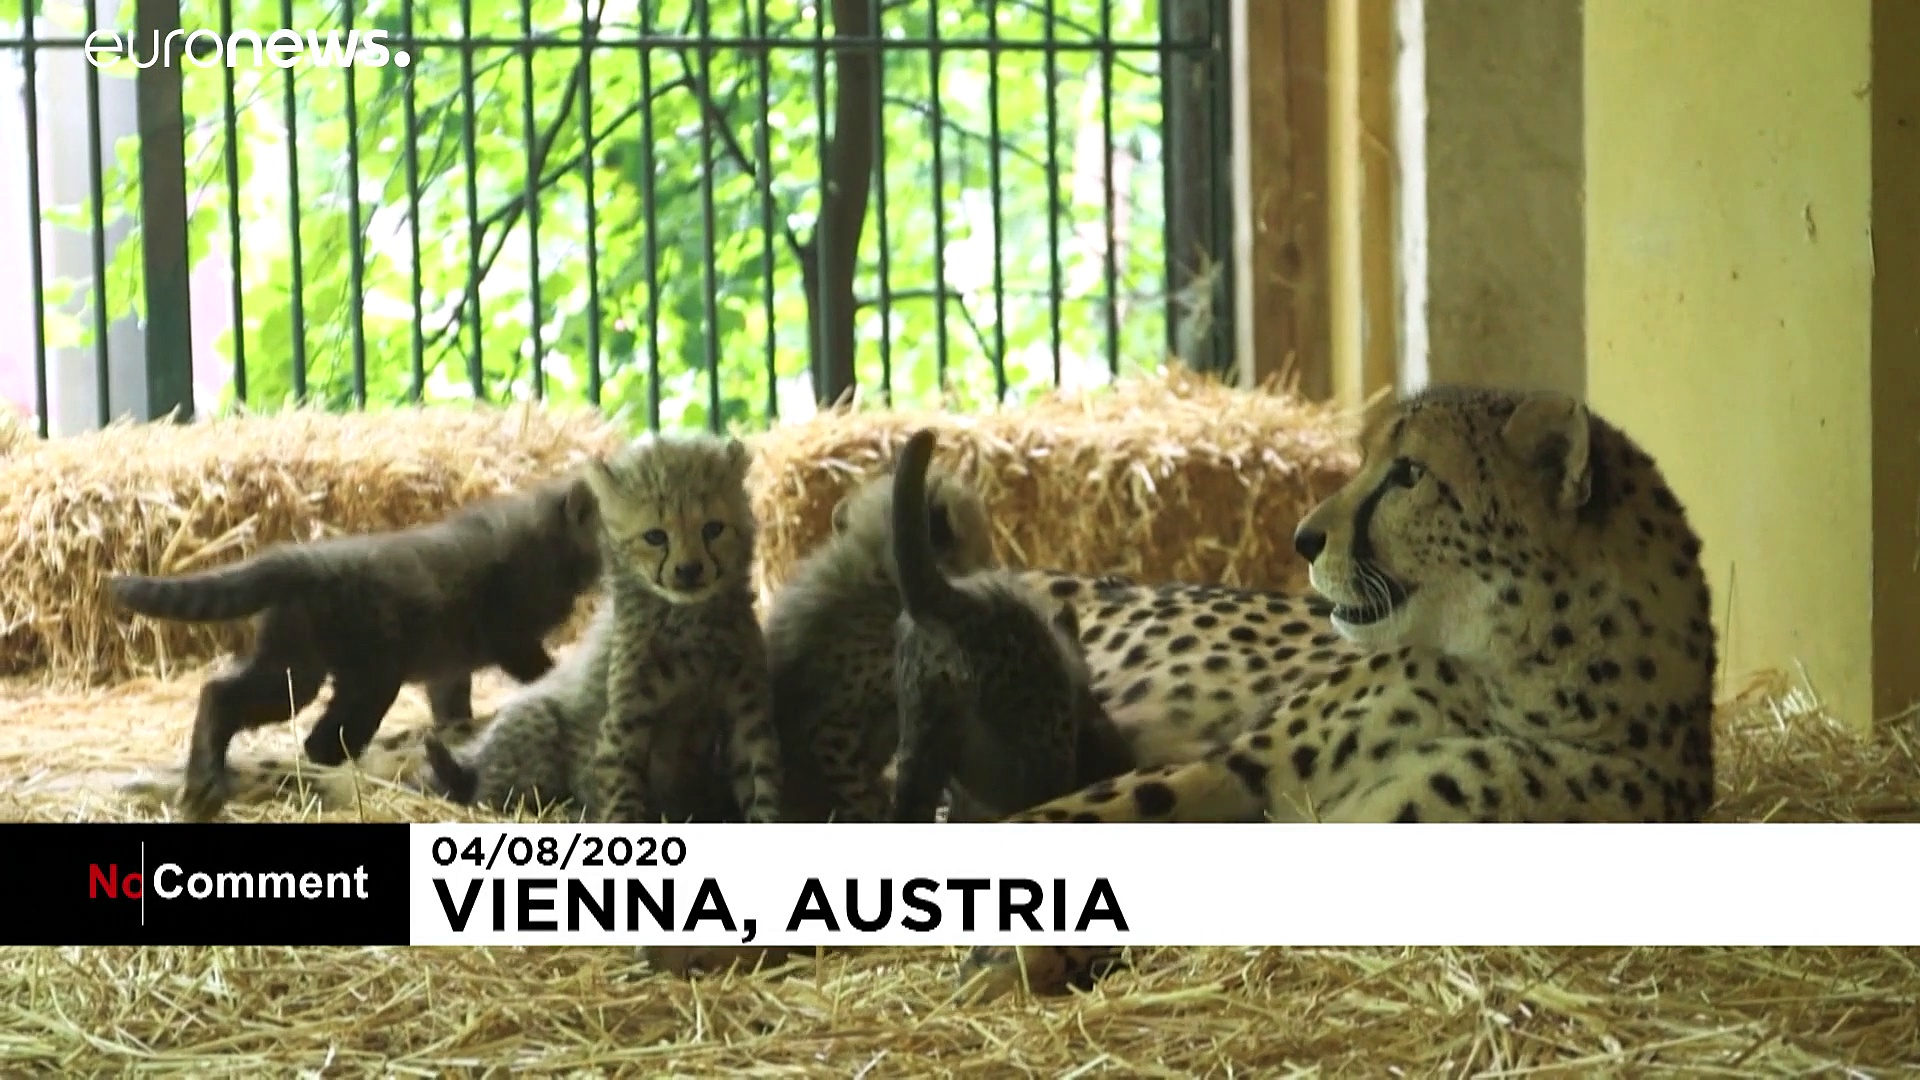 Four cheetah cubs make their first appearance in Austrian zoo